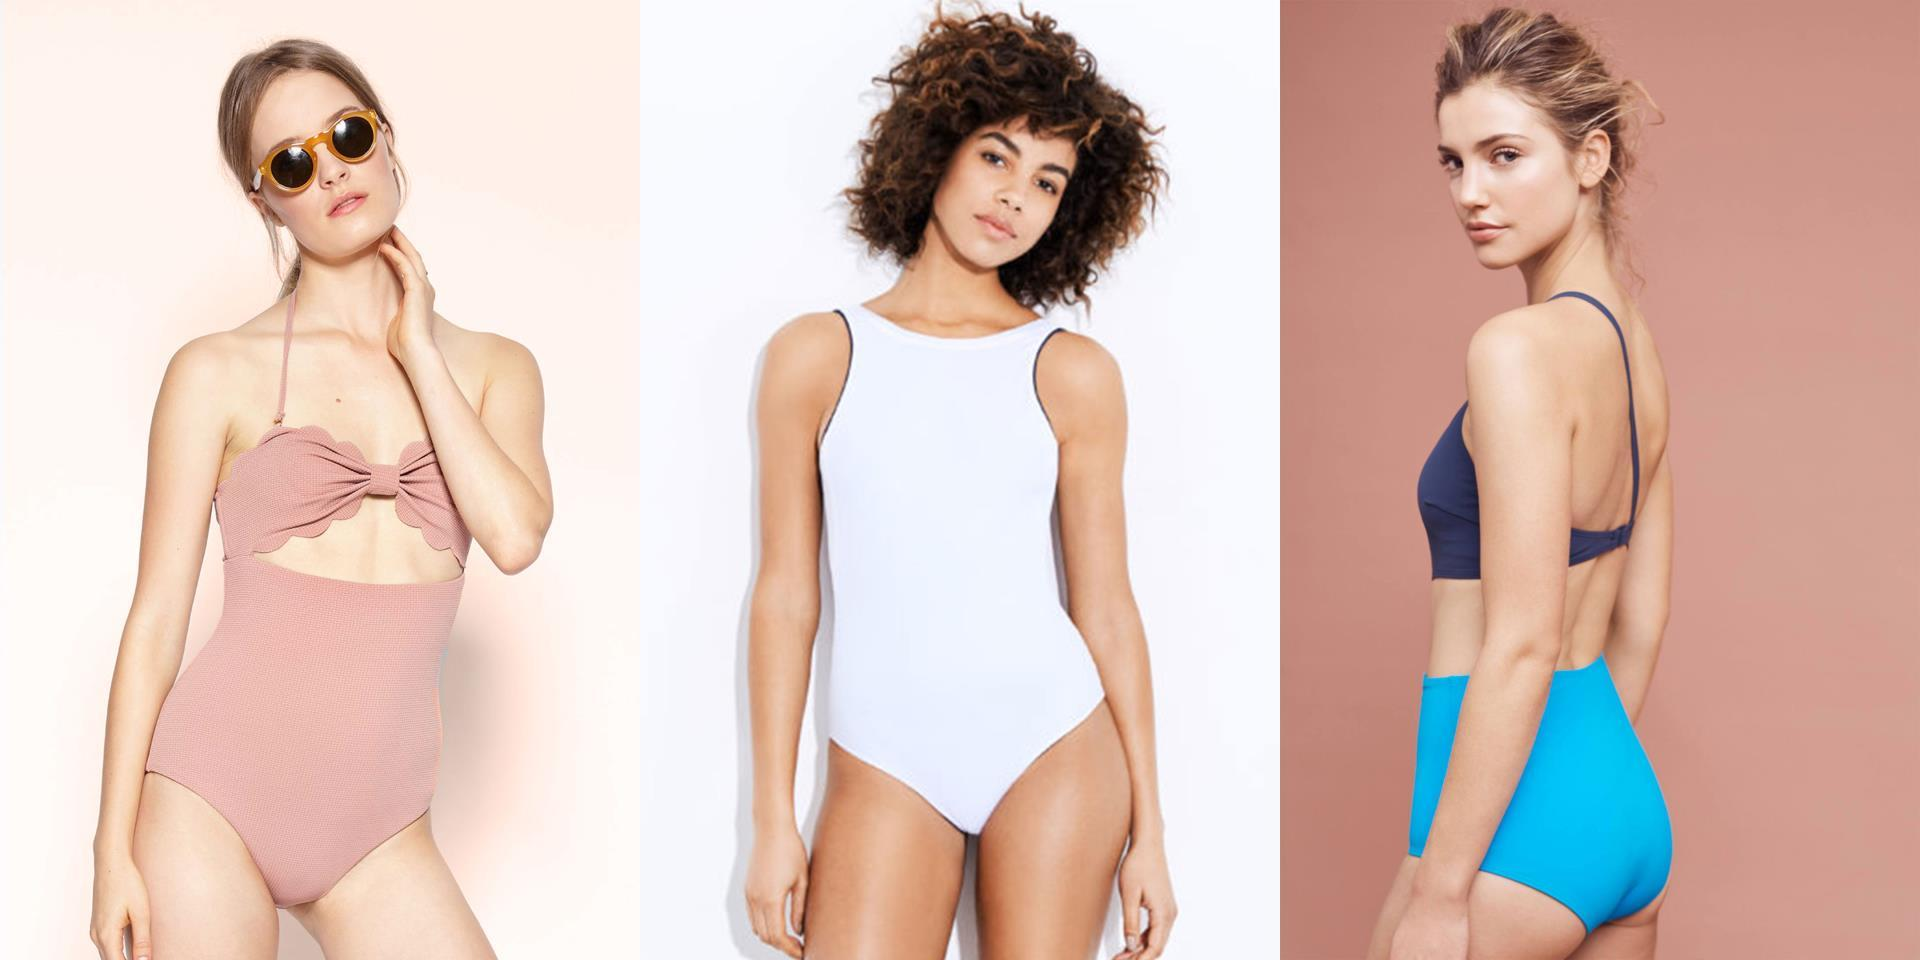 420b962feadf9 The Return Of the One-piece Swimsuit - Furthermore